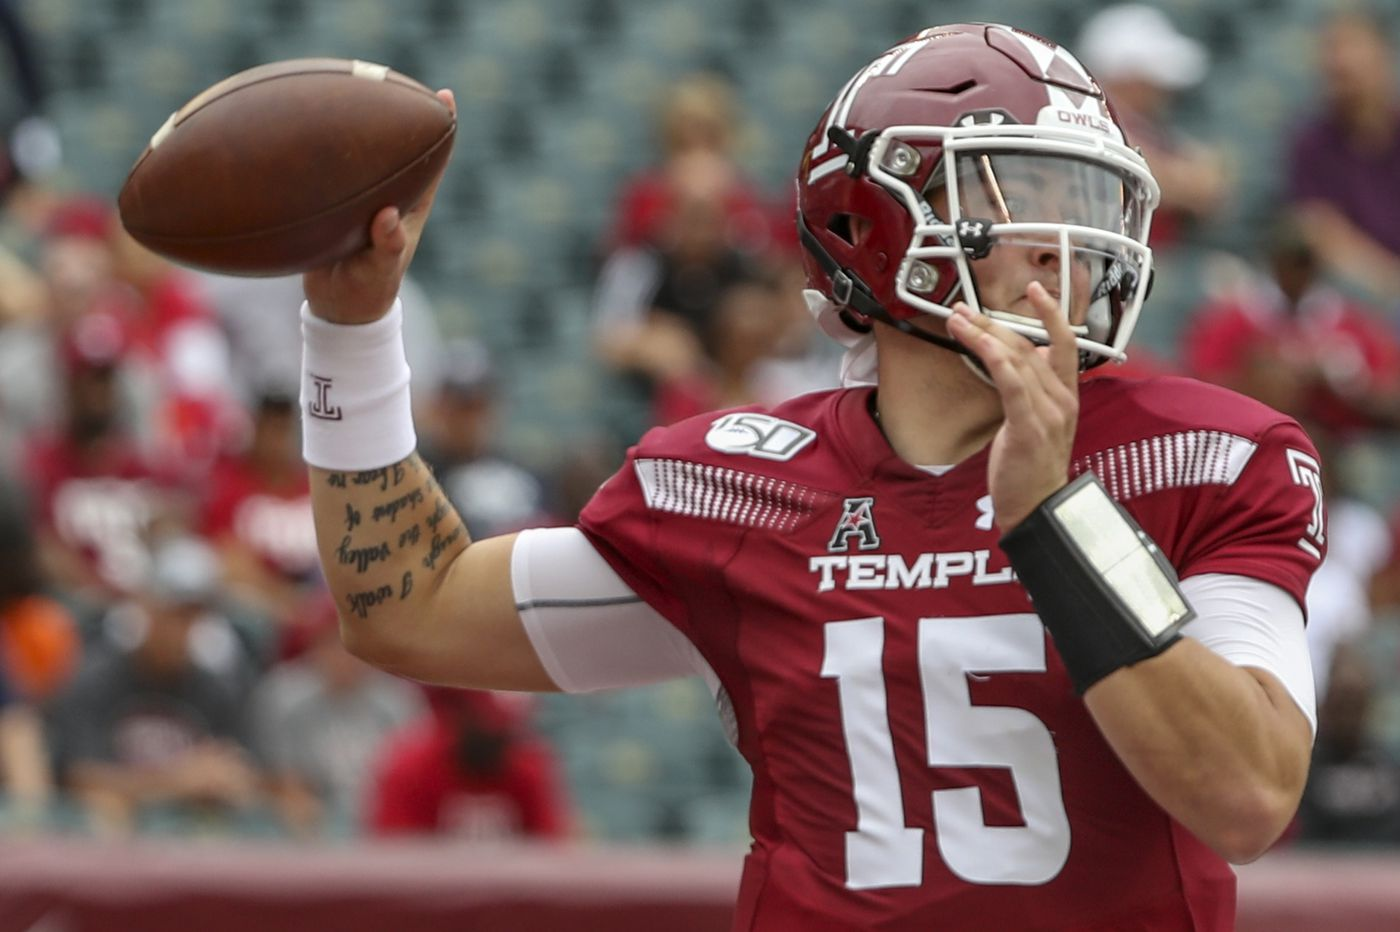 Quarterback Anthony Russo says he's leaving Temple to enter the transfer portal